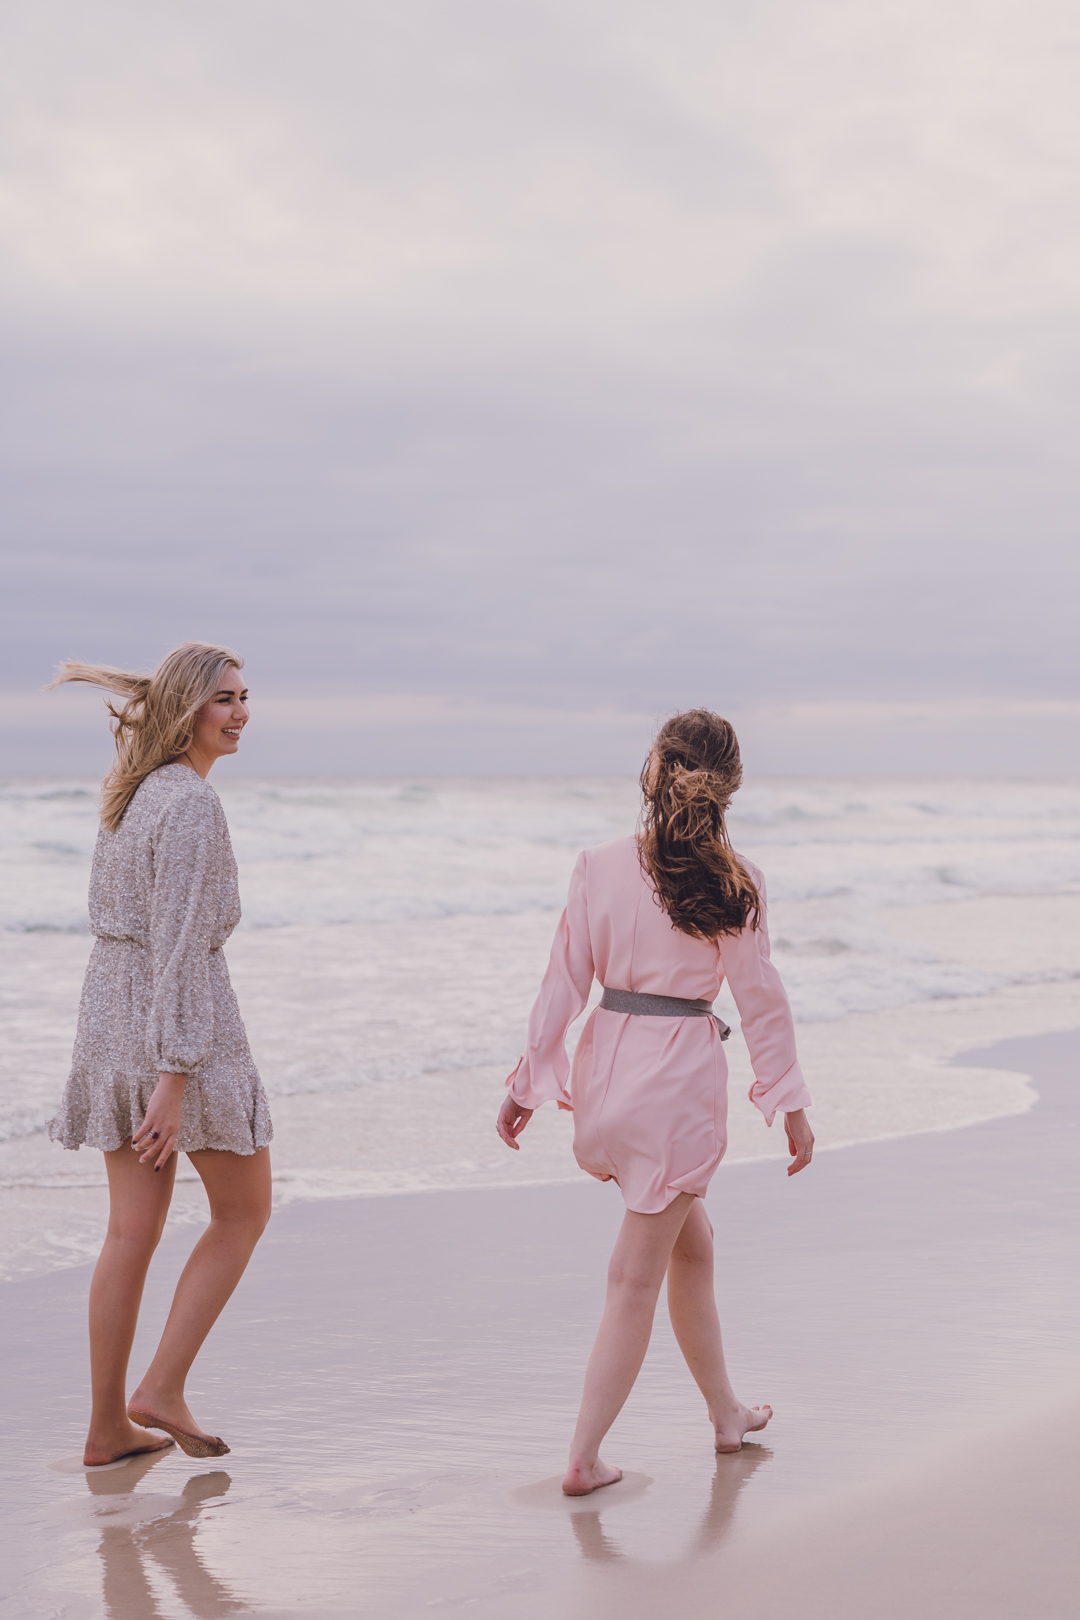 Cape Town Friends Beach_Seaside Photo session by Cape Image Co. (Small File)-4.jpg